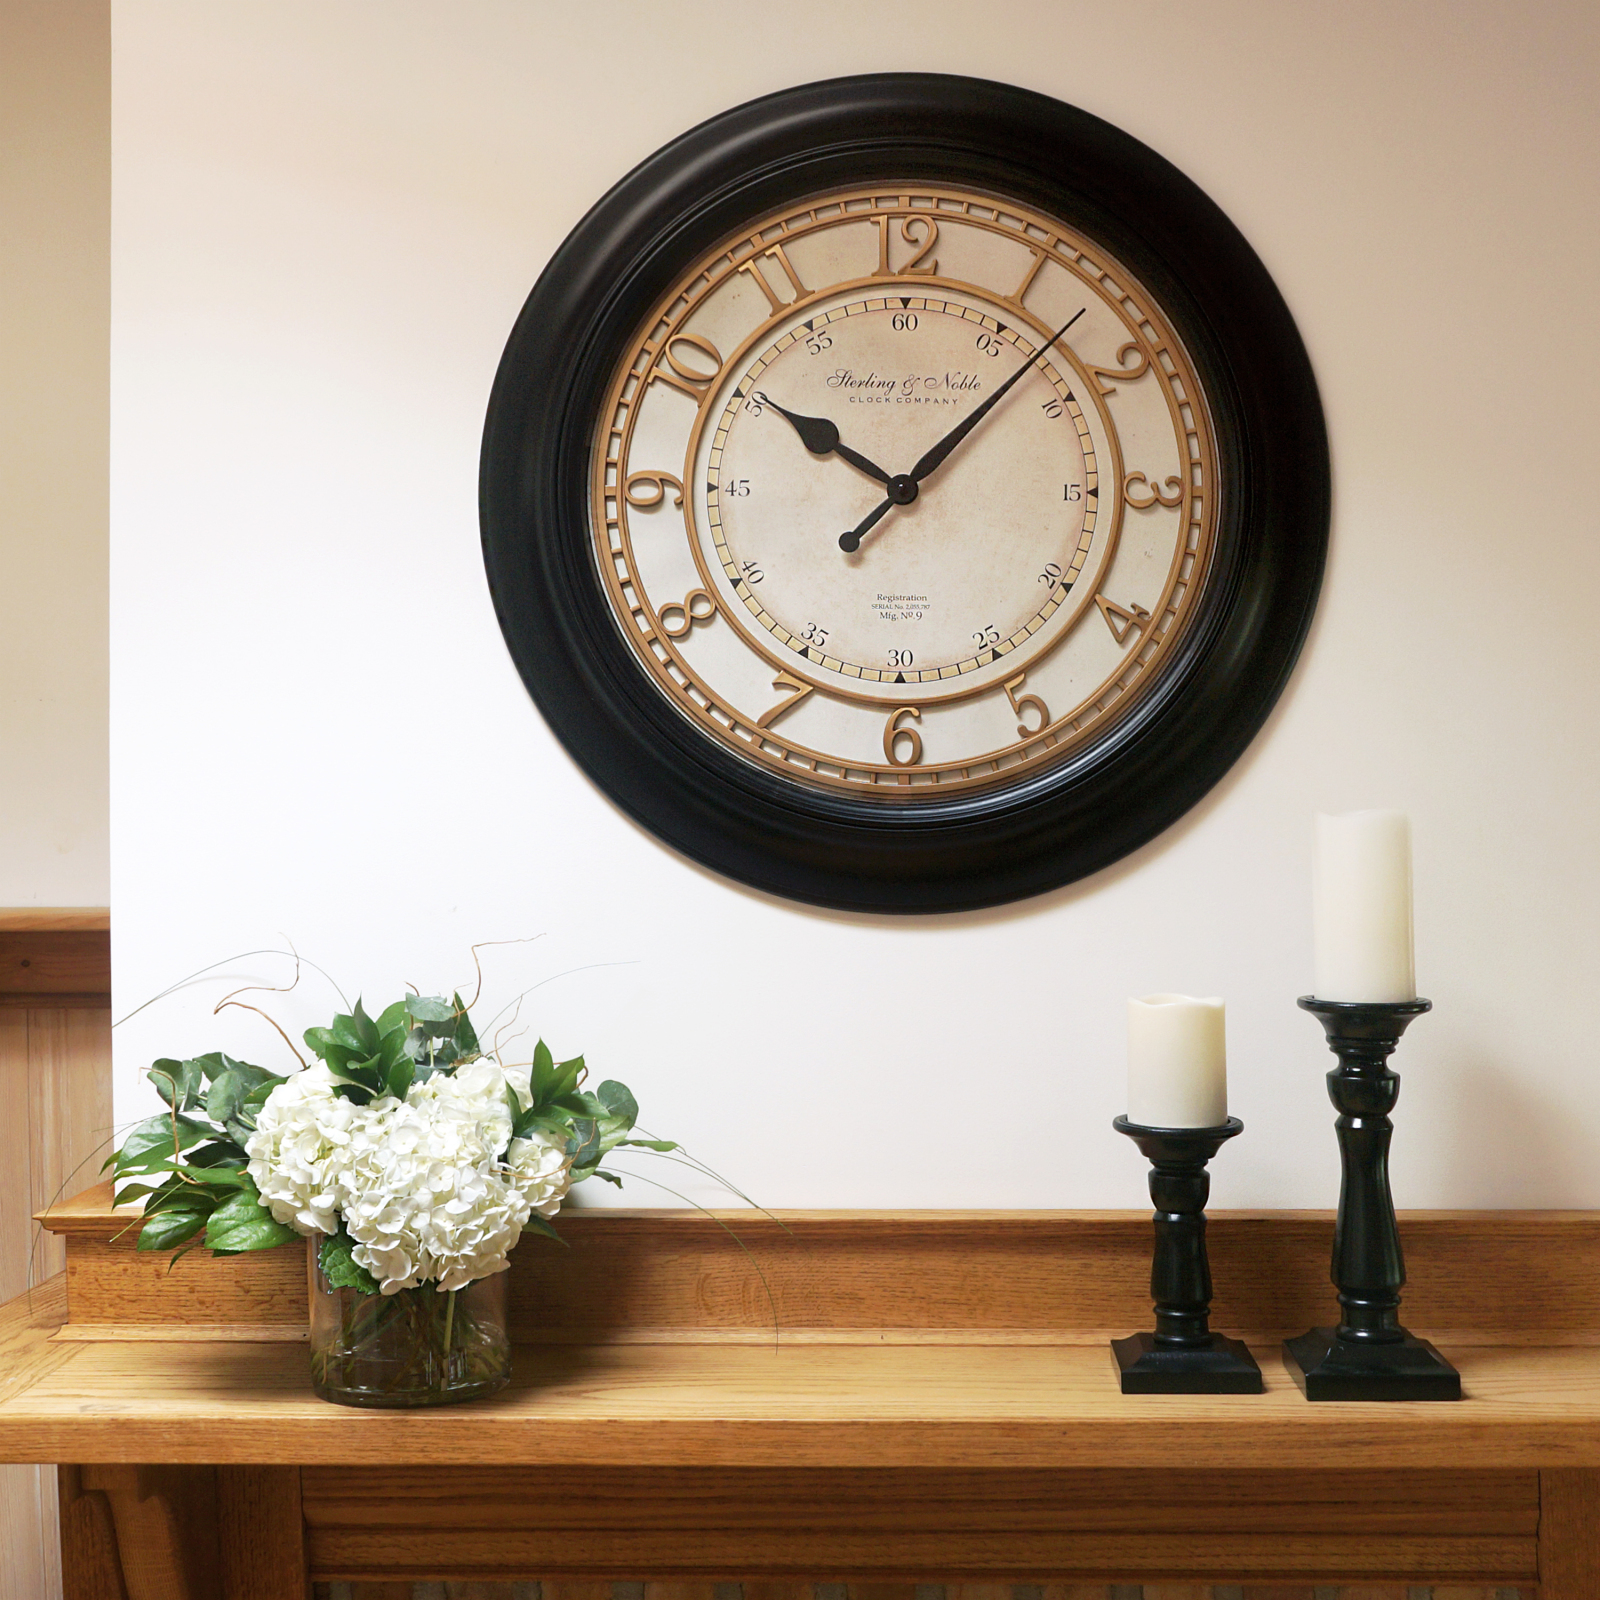 Buy Clock Special Buy Oversized Clocks Under 25 Walmart